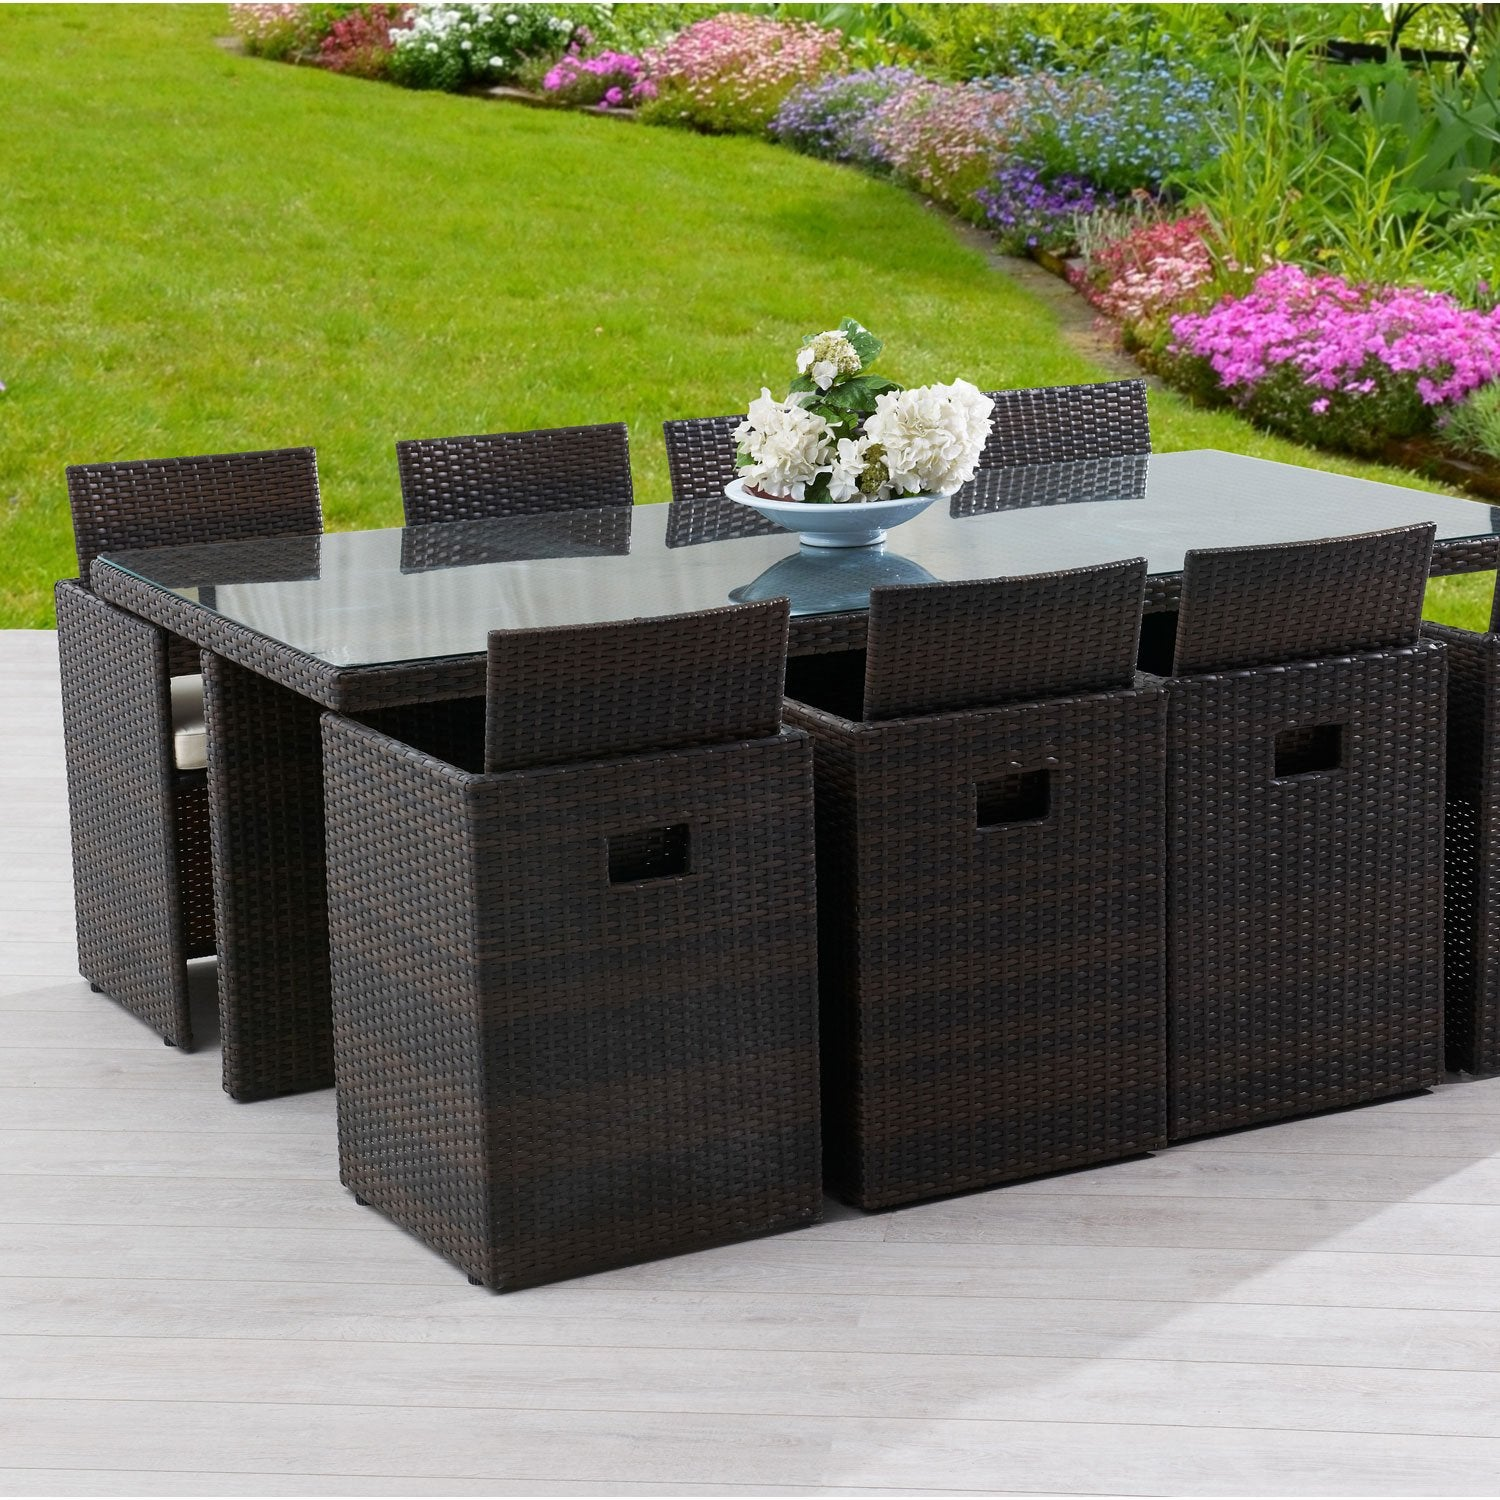 Salon de jardin encastrable r sine tress e marron 1 table - Salons de jardin leroy merlin ...